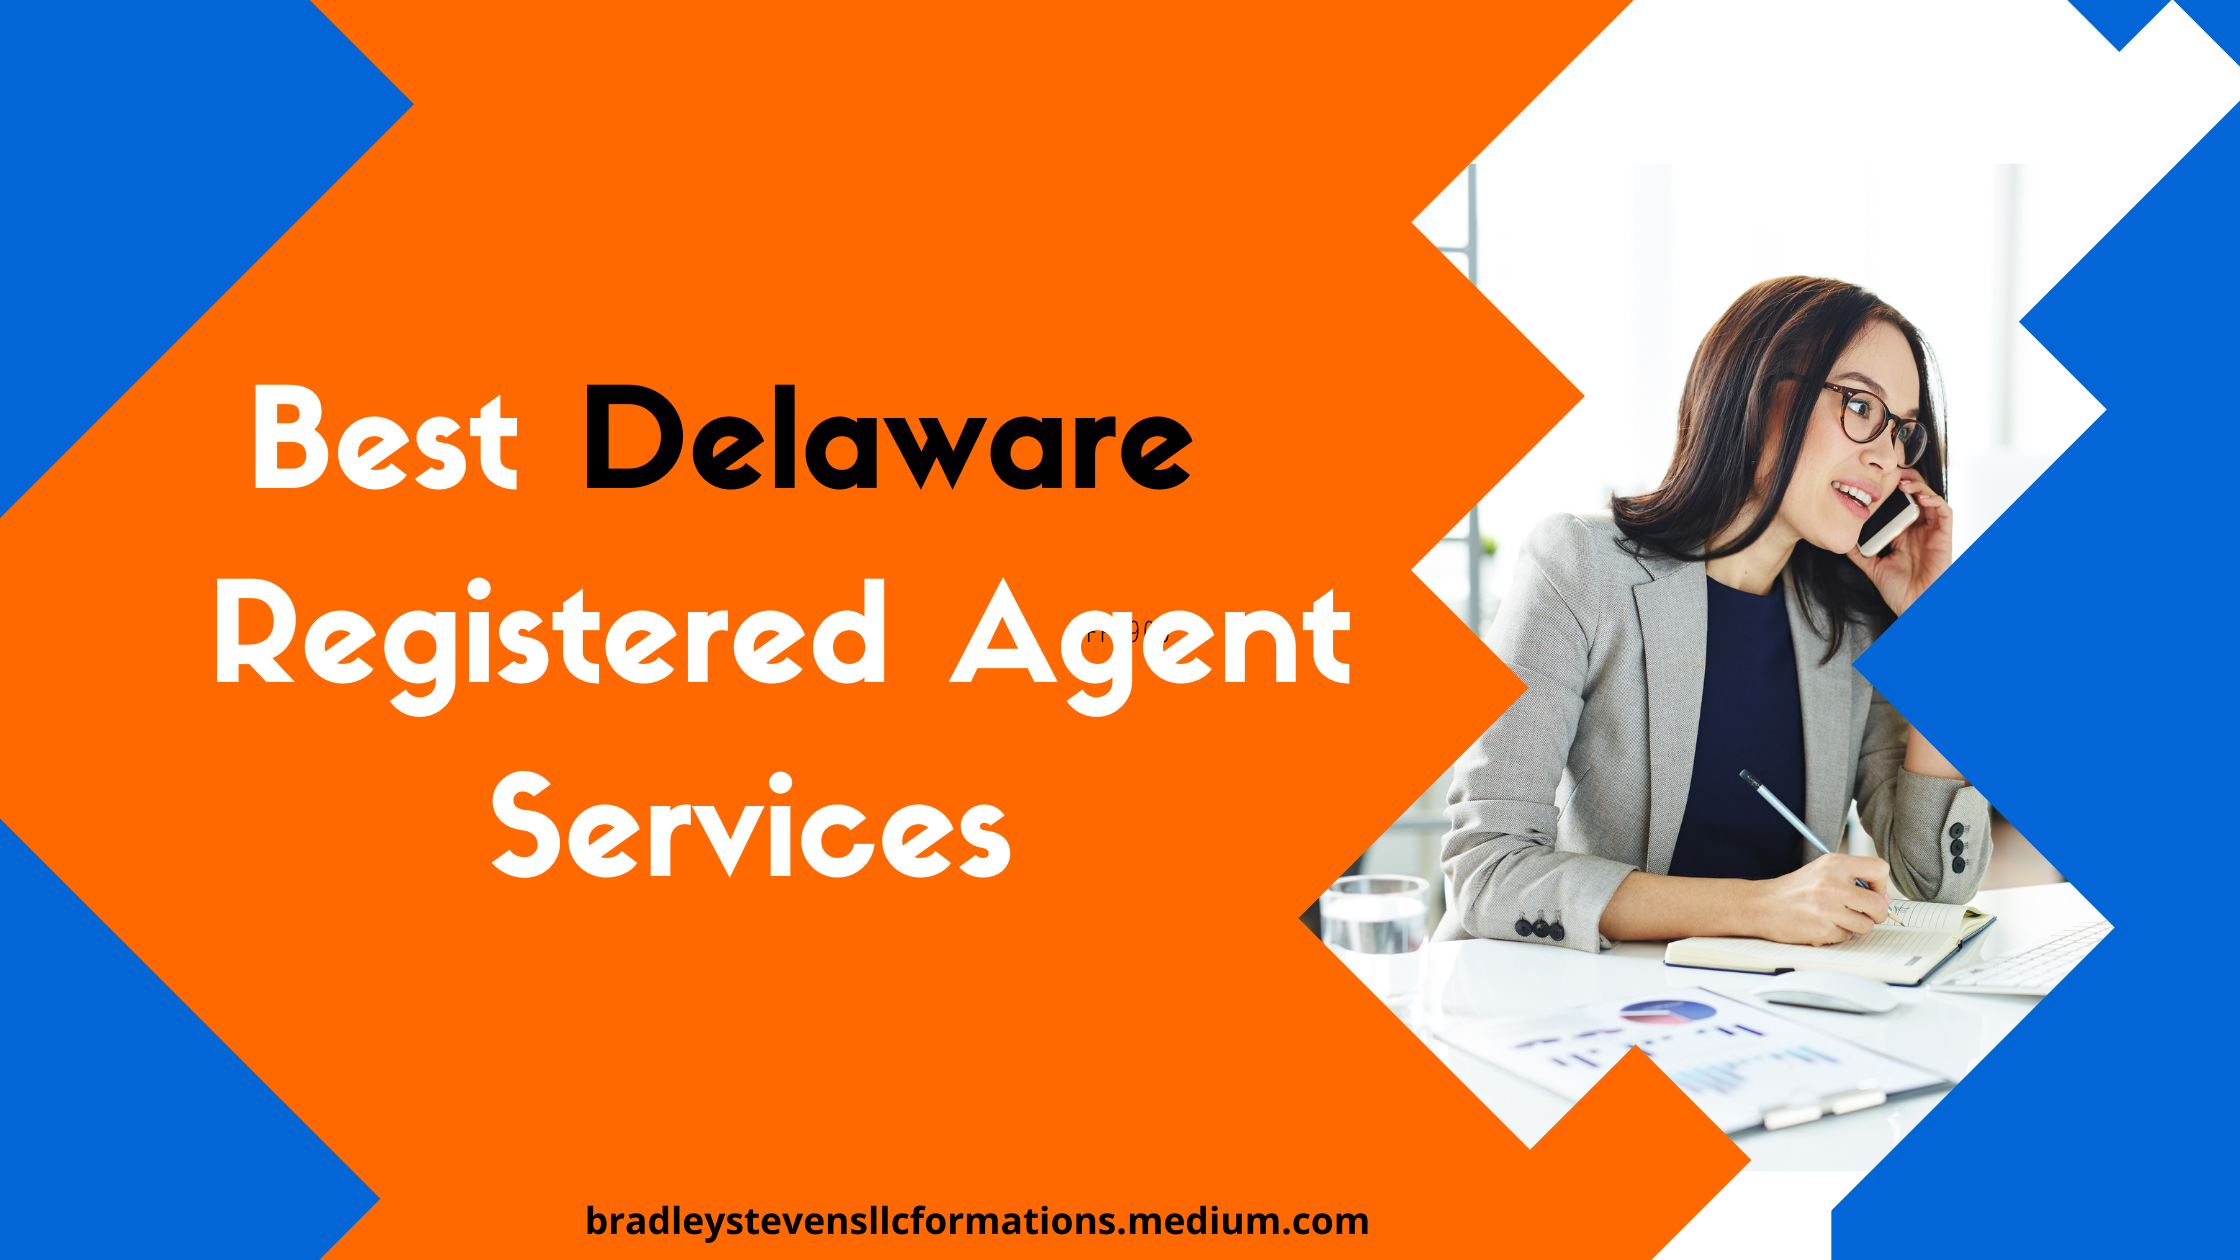 Best Delaware Registered Agent Services